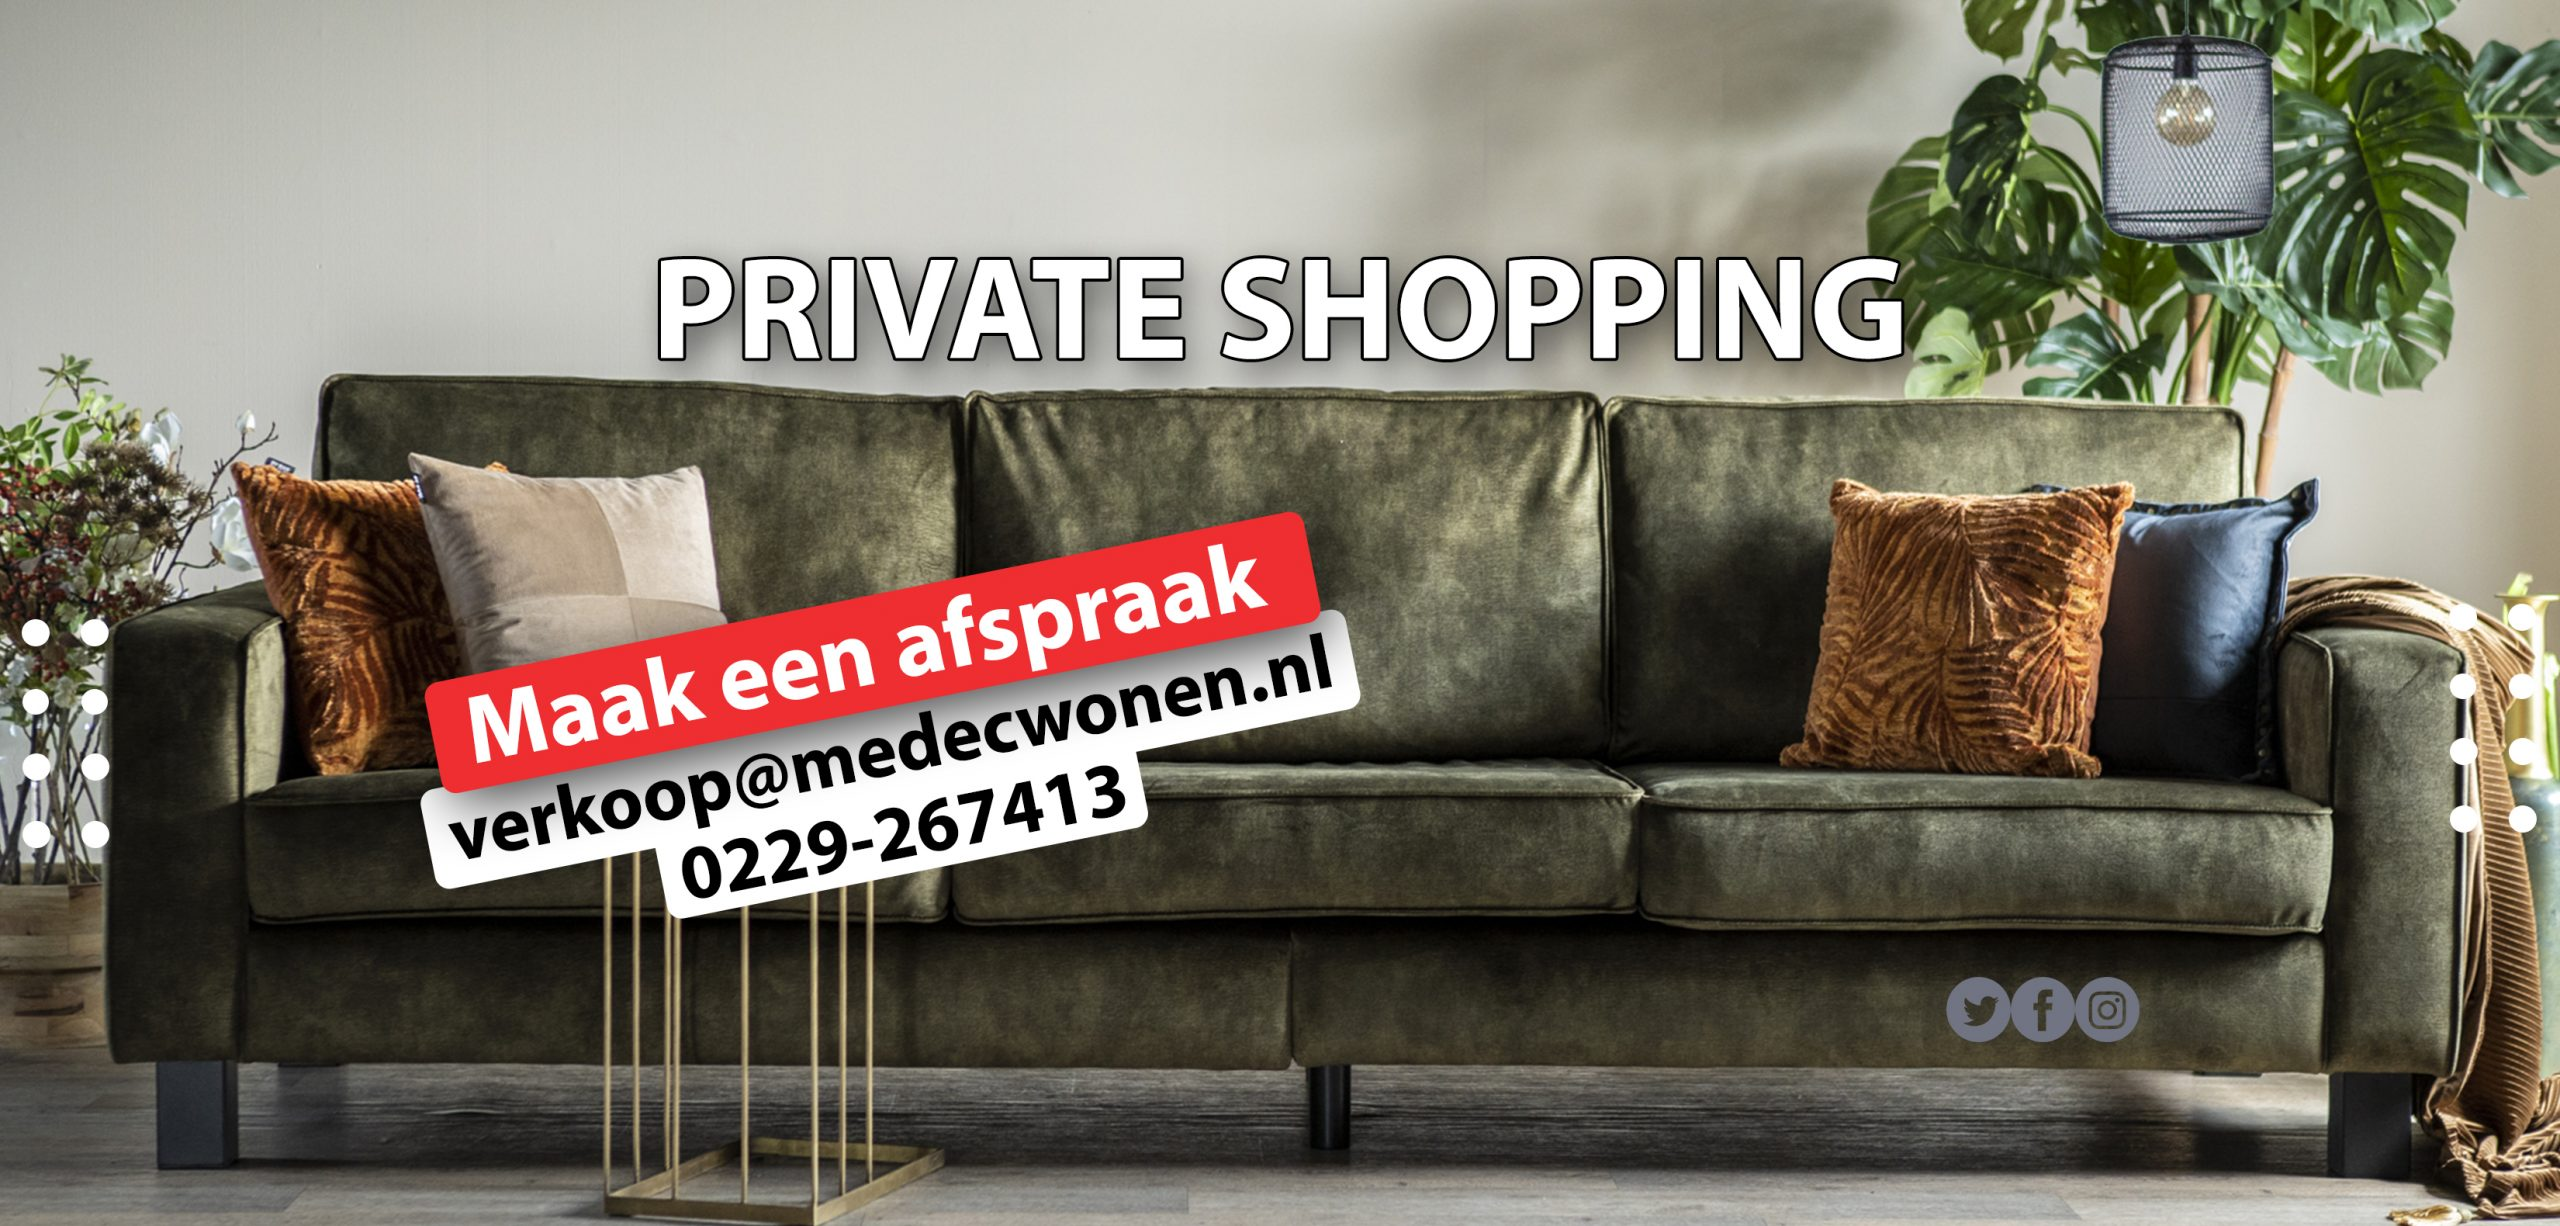 Advertentie 11 april afspraak